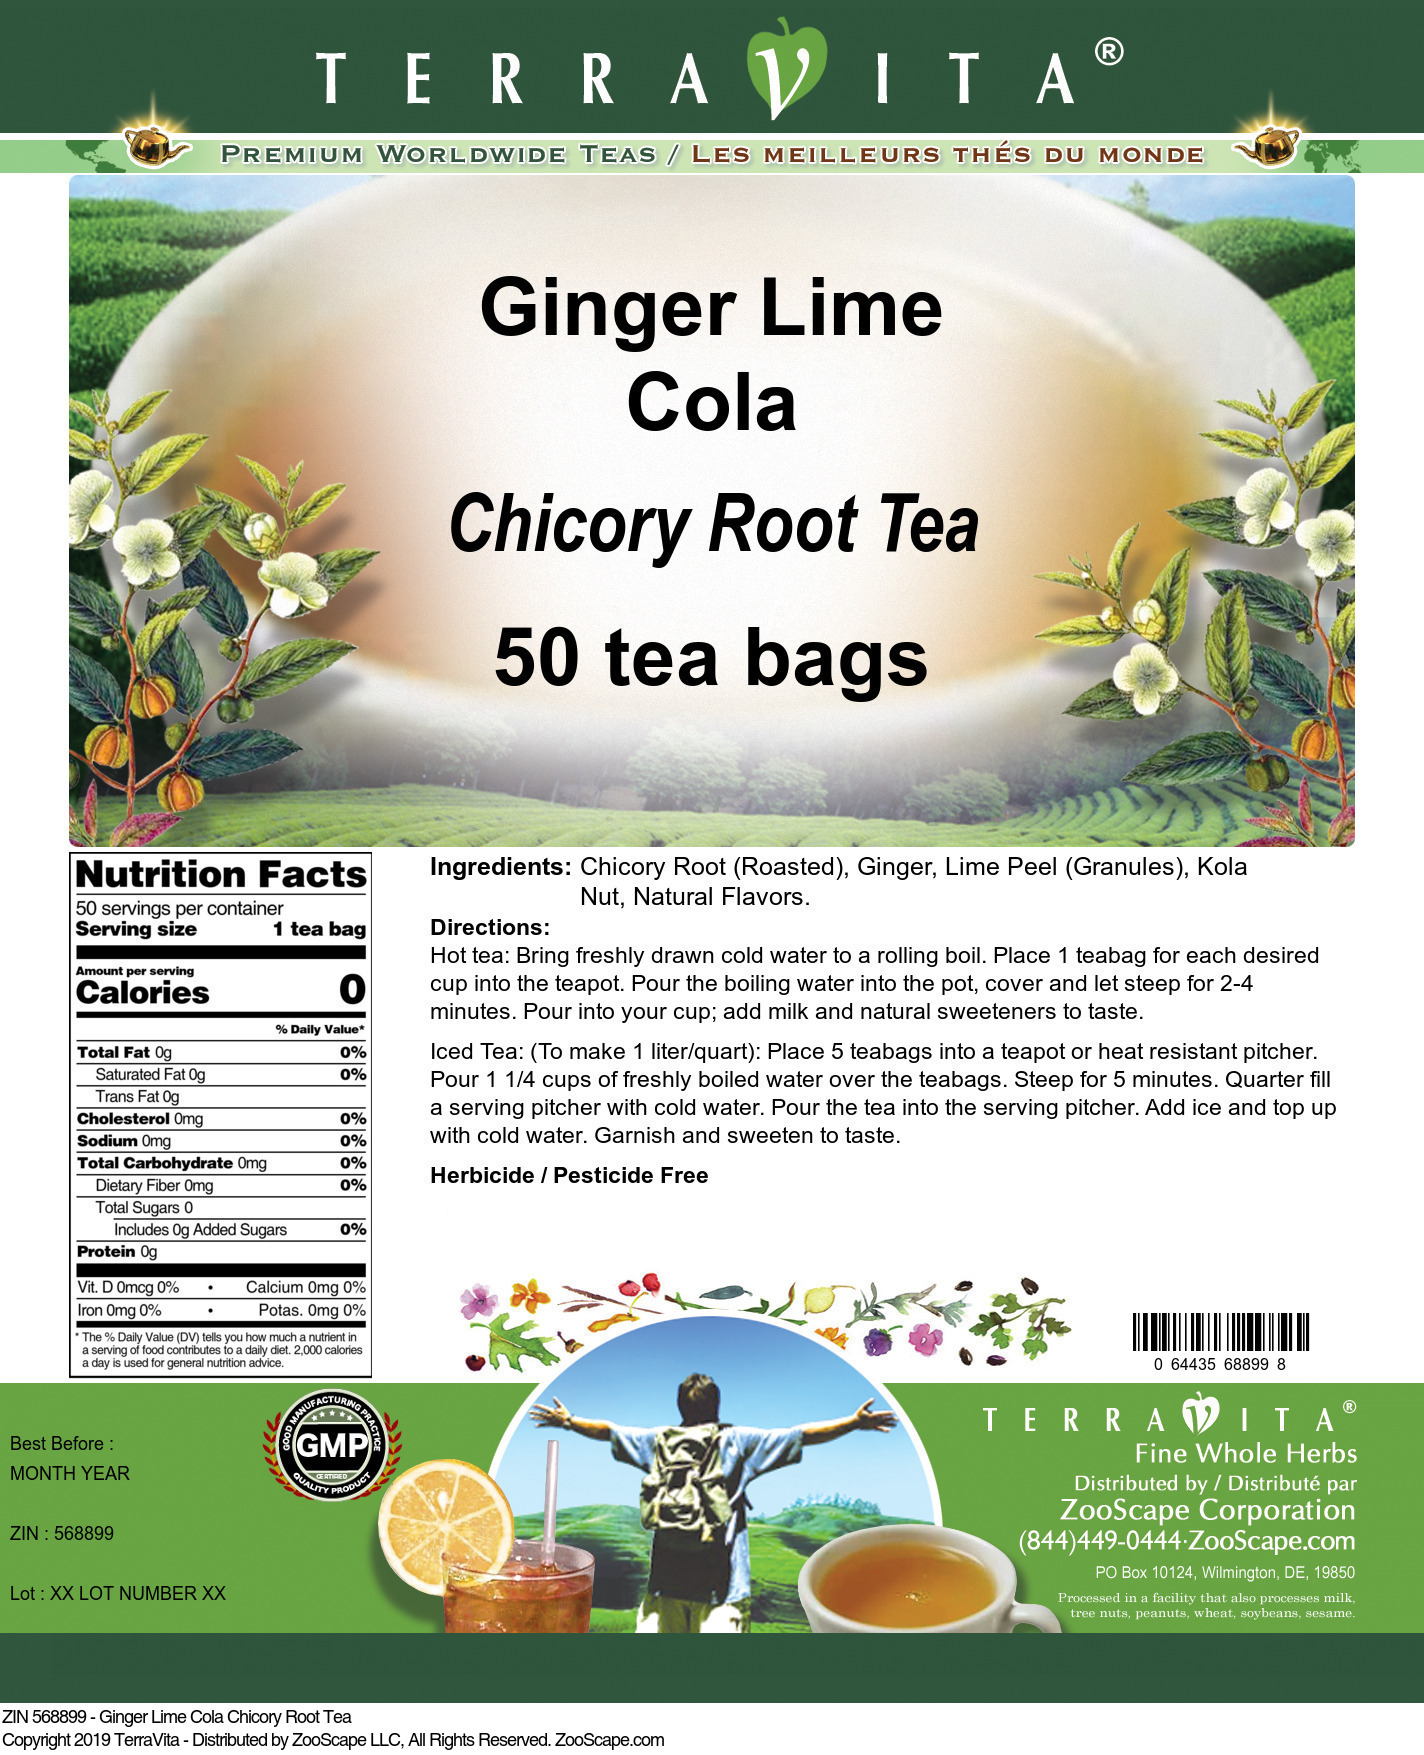 Ginger Lime Cola Chicory Root